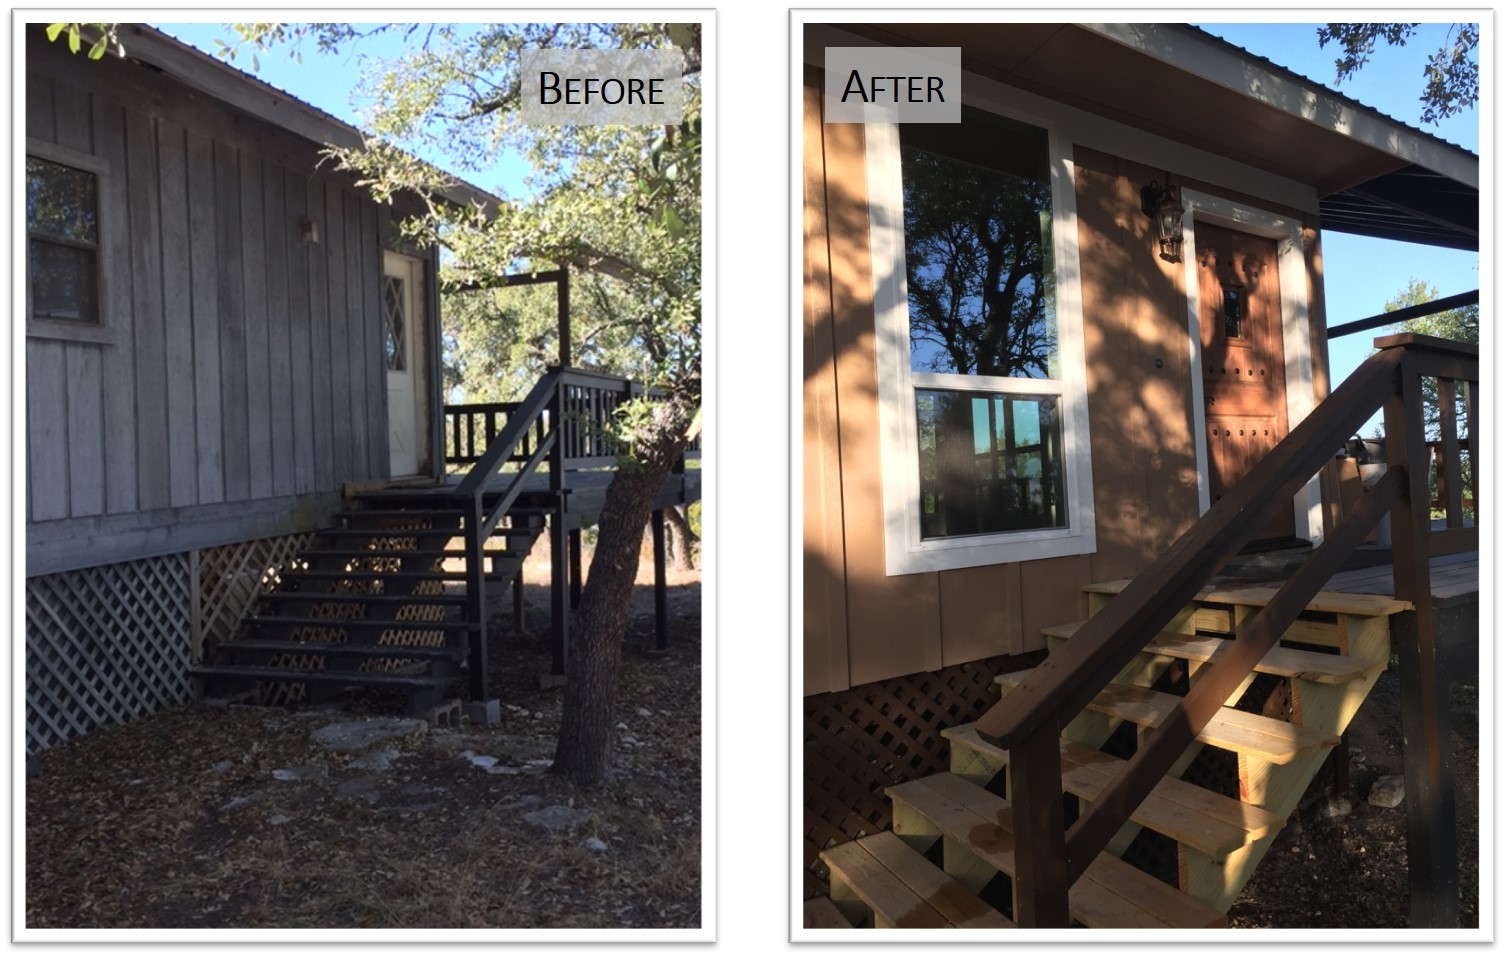 910 PLL, Exterior Front Door1, Before and After, Bear Creek Homes.jpg